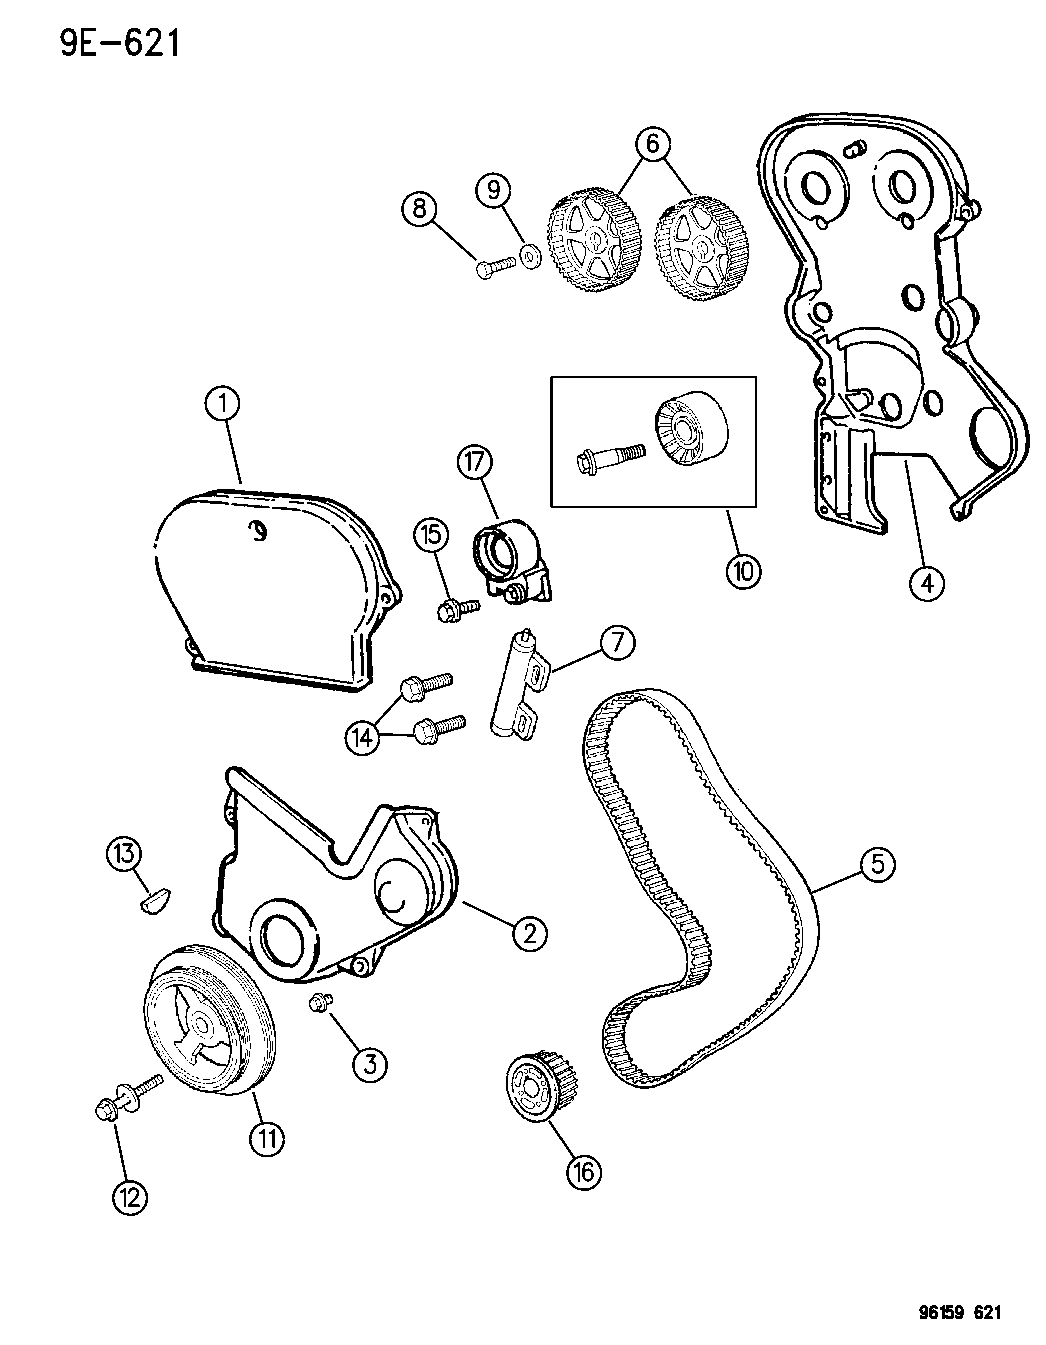 1996 Dodge Grand Caravan Engine Diagram